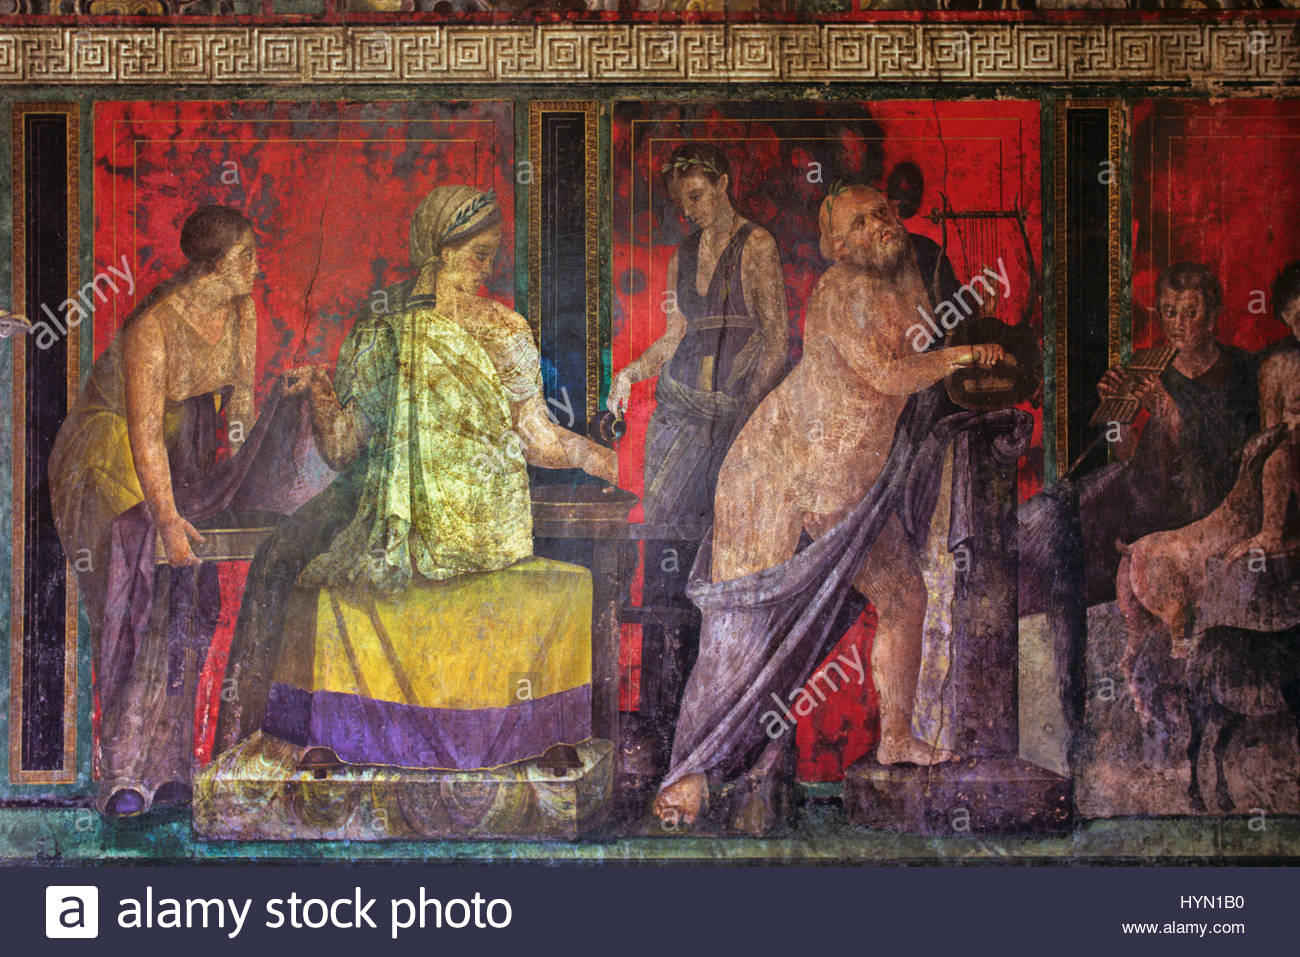 The Villa of Mysteries contains room with well preserved wall paintings thought to relate to the cult of Dionysus. - Stock Image